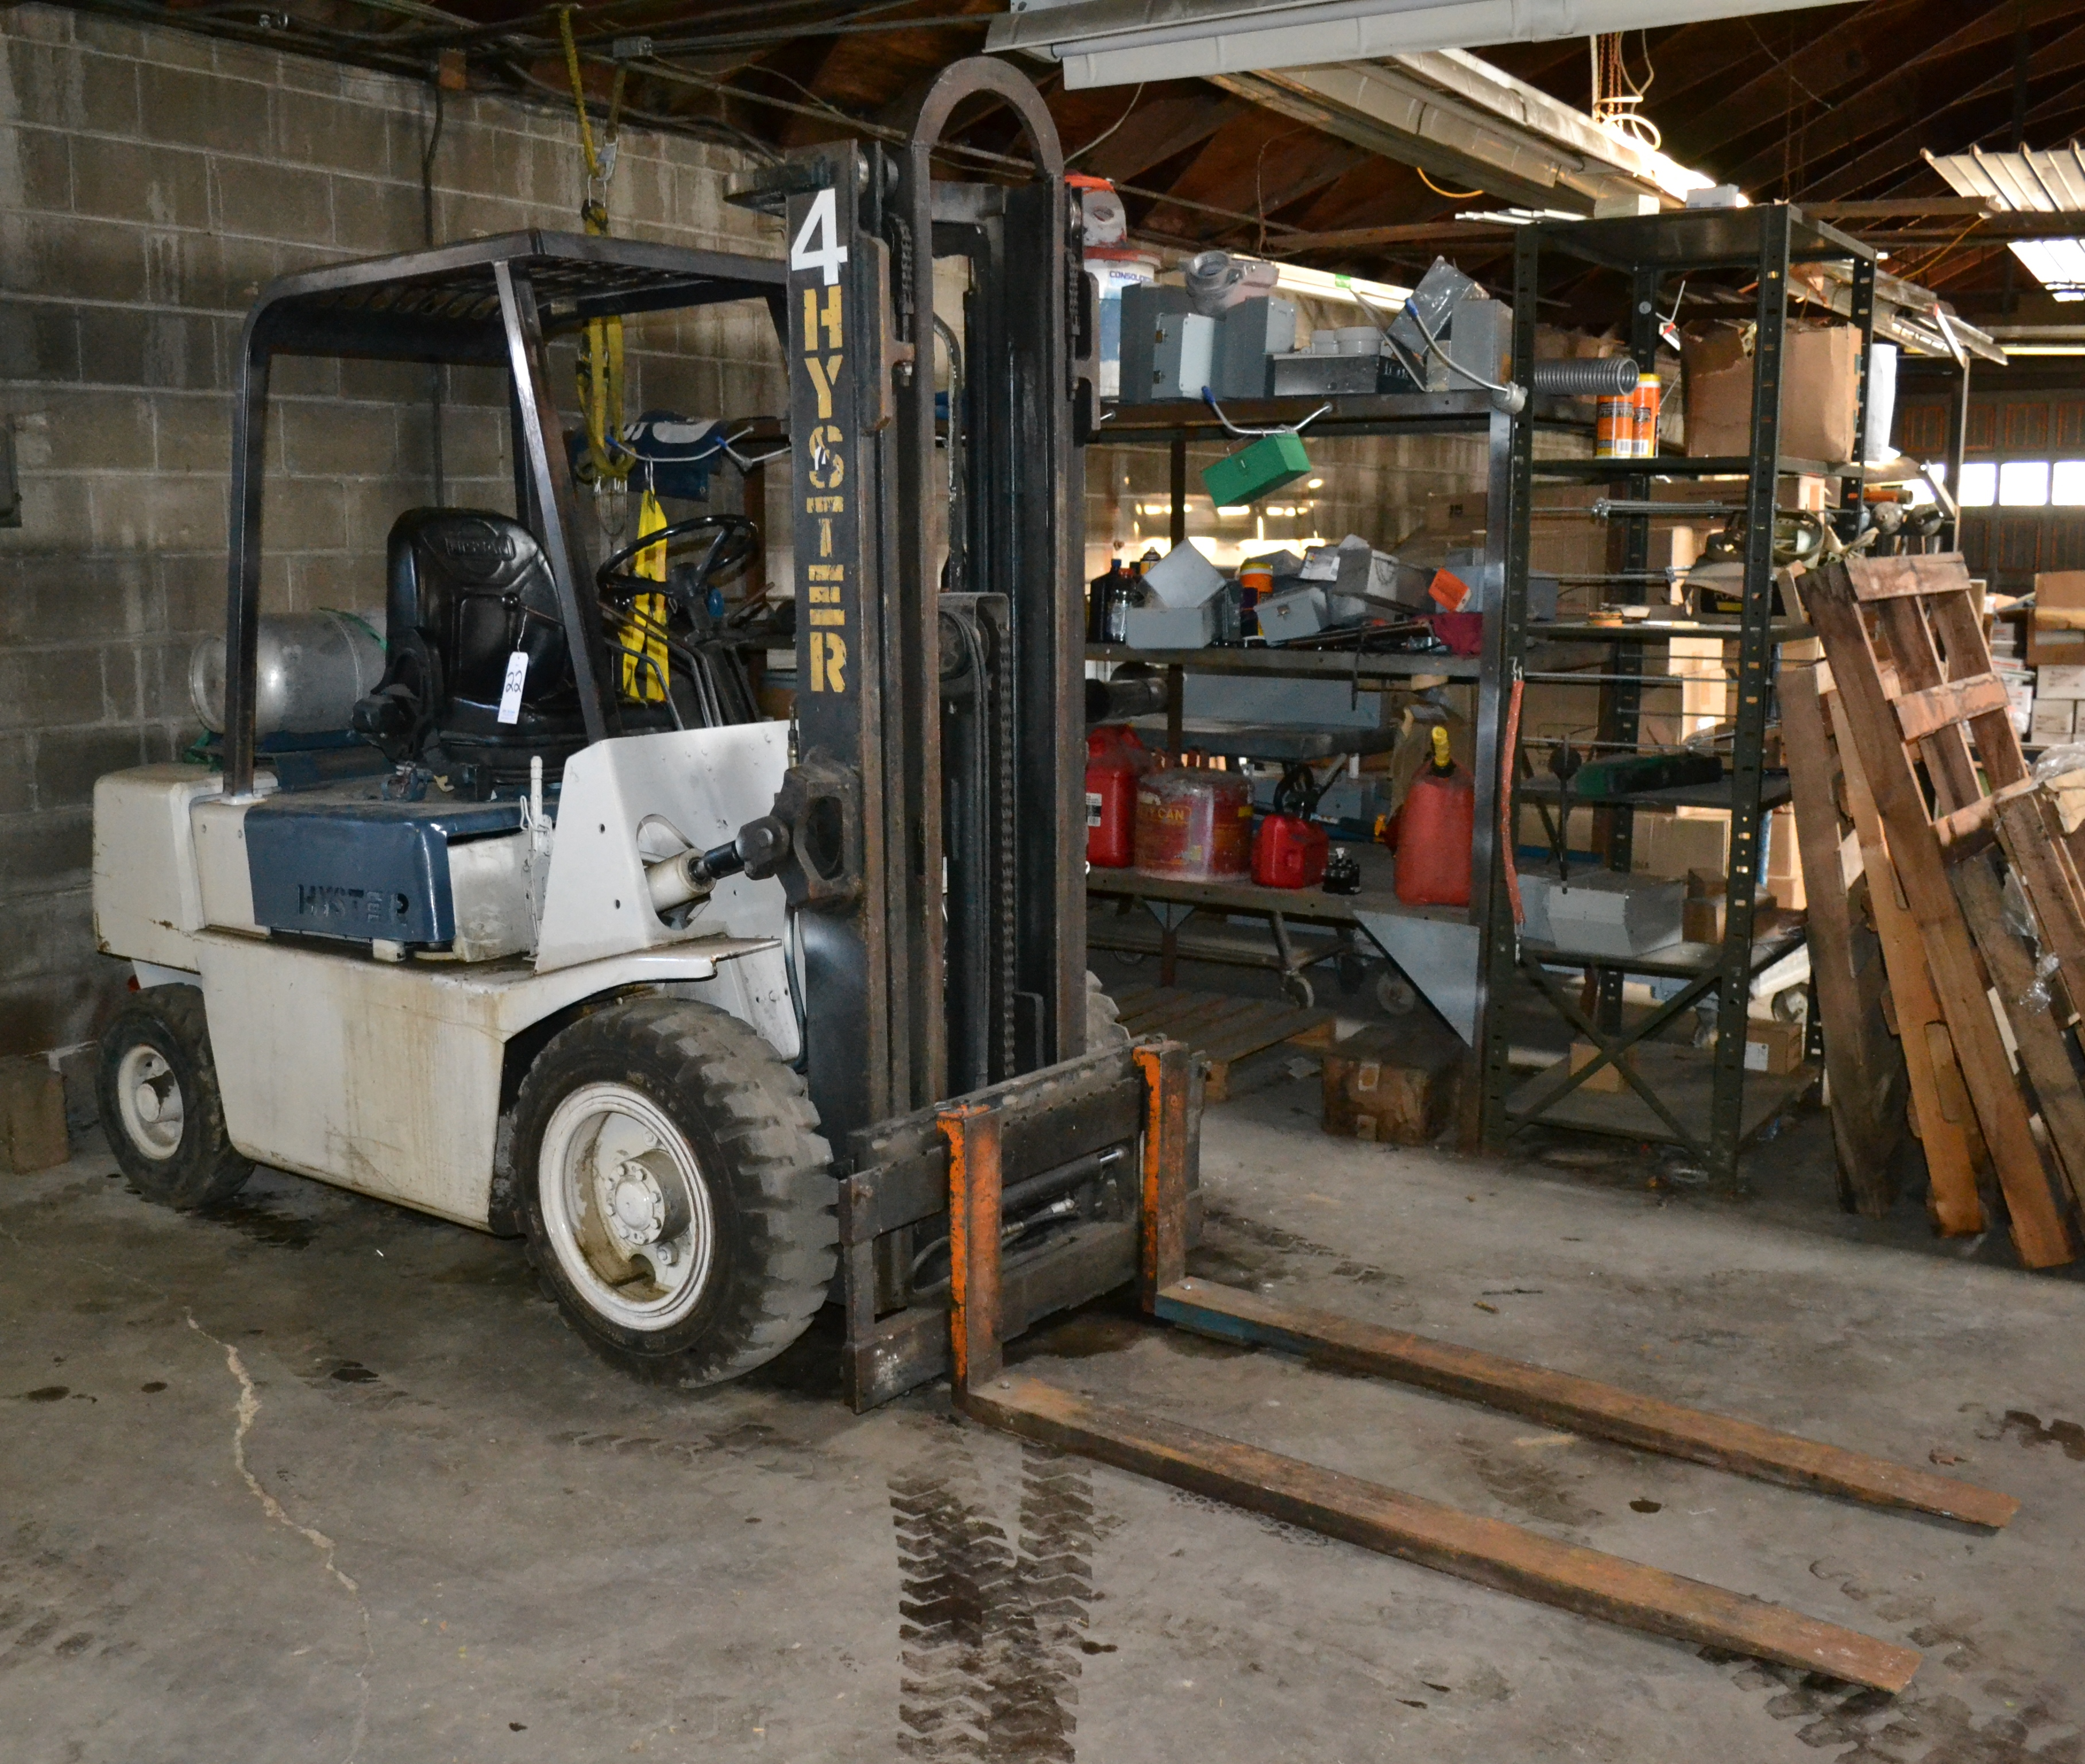 Hyster Model H50XL 4,800 Lbs Capacity Forklift, LP Fueled, 3